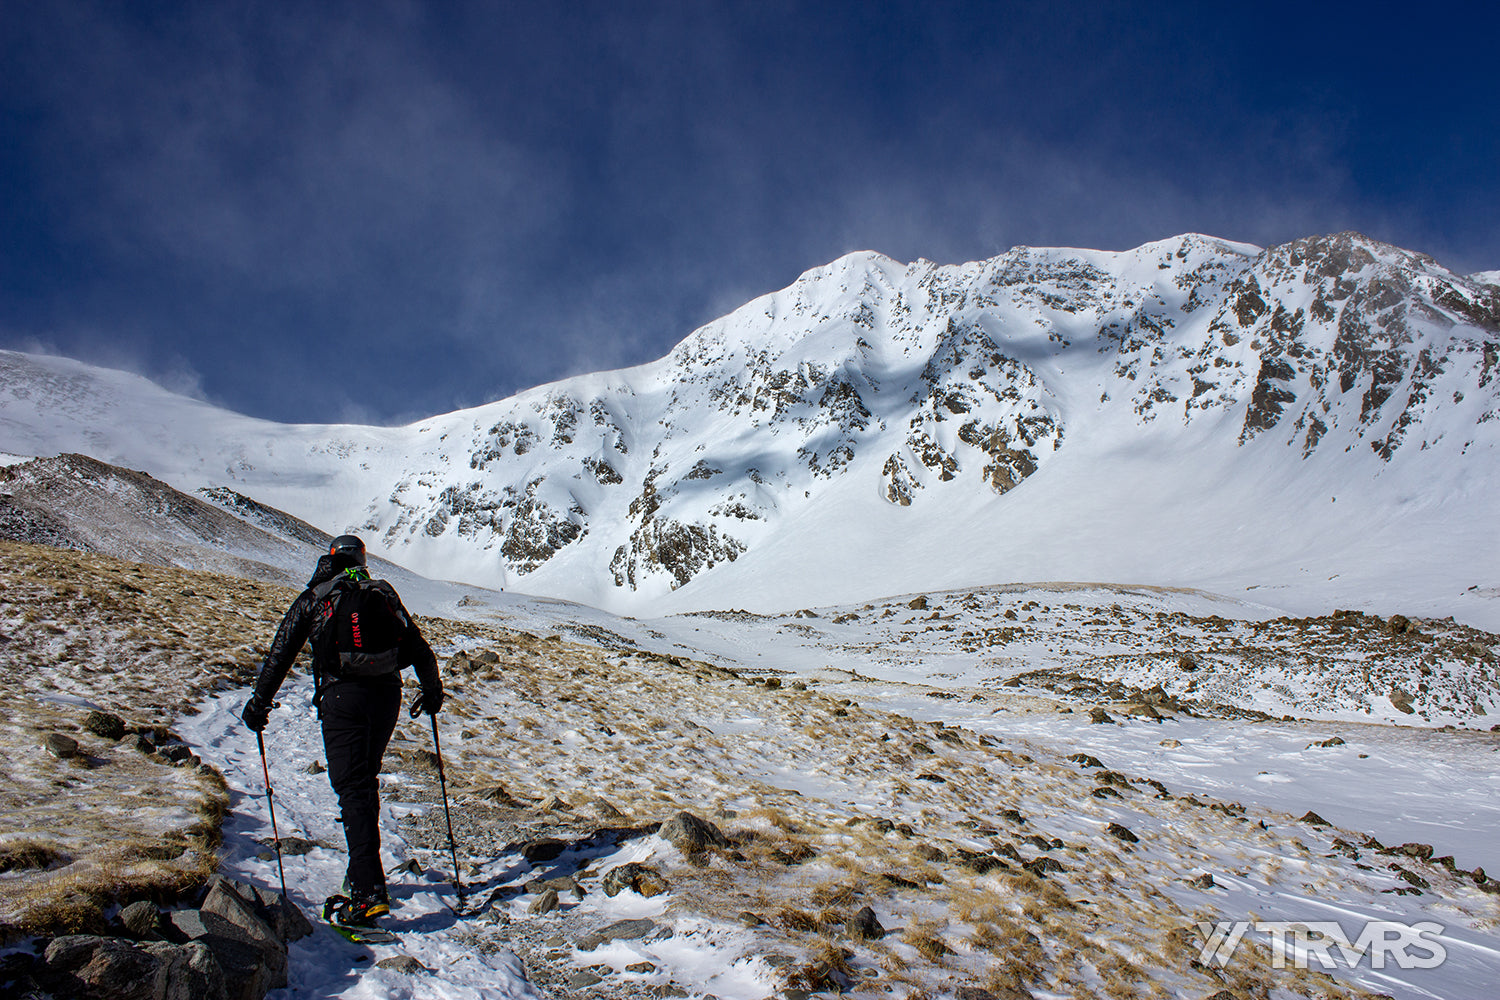 The Importance of Creating an Itinerary - Grays Peak Colorado Mountaineering | TRVRS Outdoors HIking Trail Running Backpacking